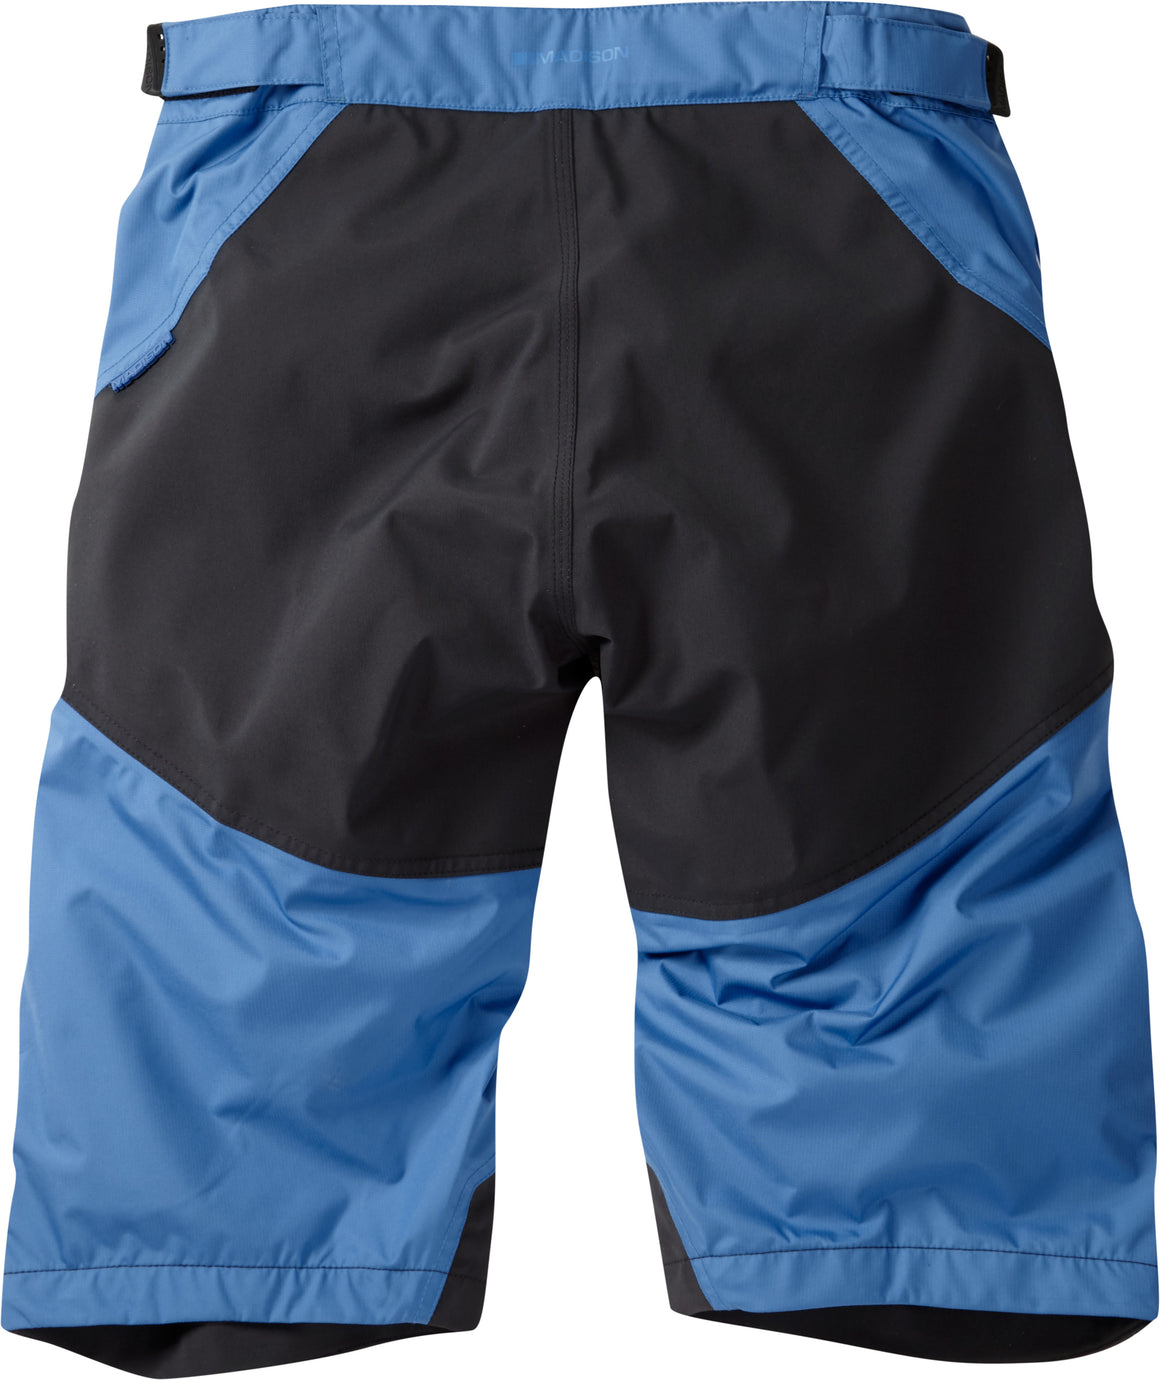 Madison DTE Women's Waterproof Shorts, Blue